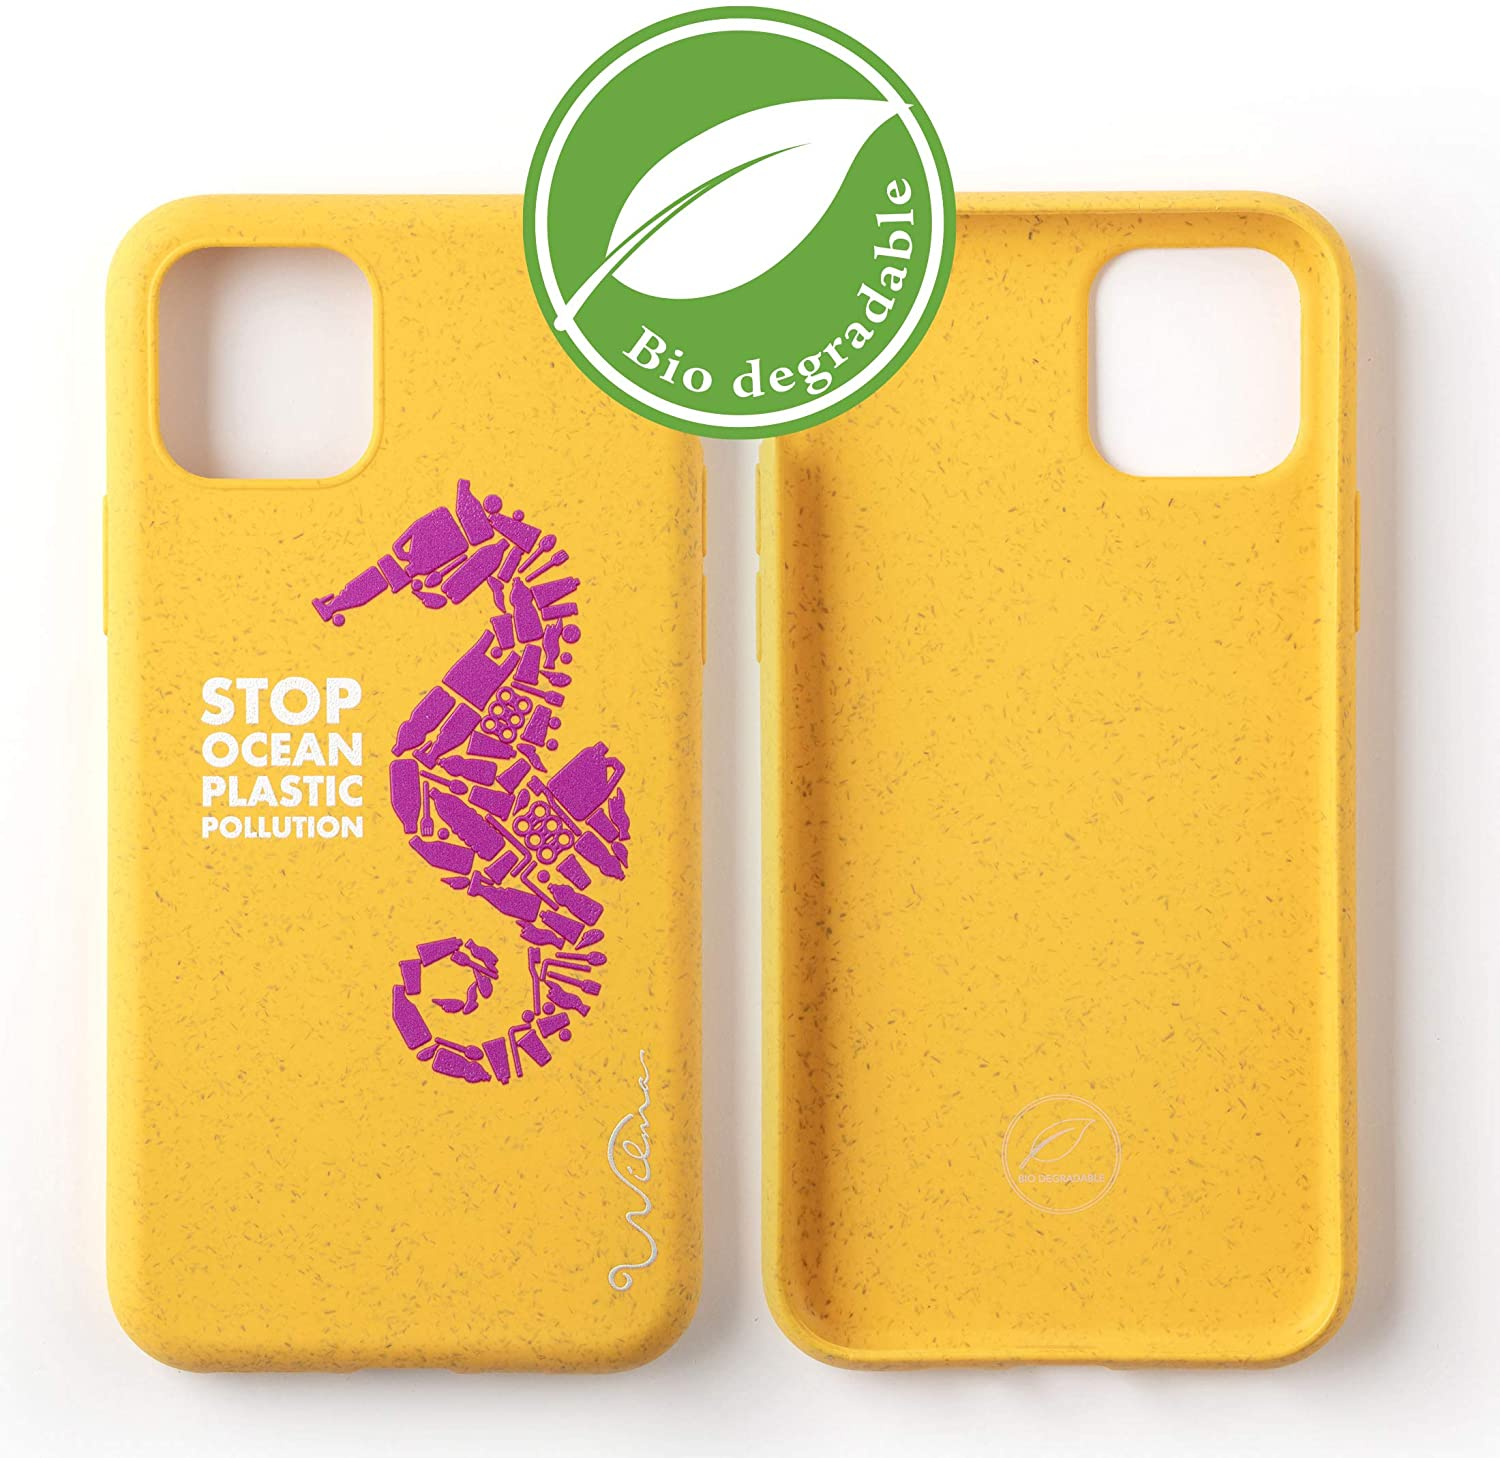 Wilma Eco-Friendly, Biodegradable Mobile Phone Case Compatible with iPhone 11 Pro, Stop Sea Plastic Dirt, Plastic-Free, Waste Free, Non-Toxic, Full Protection Case Seahorse